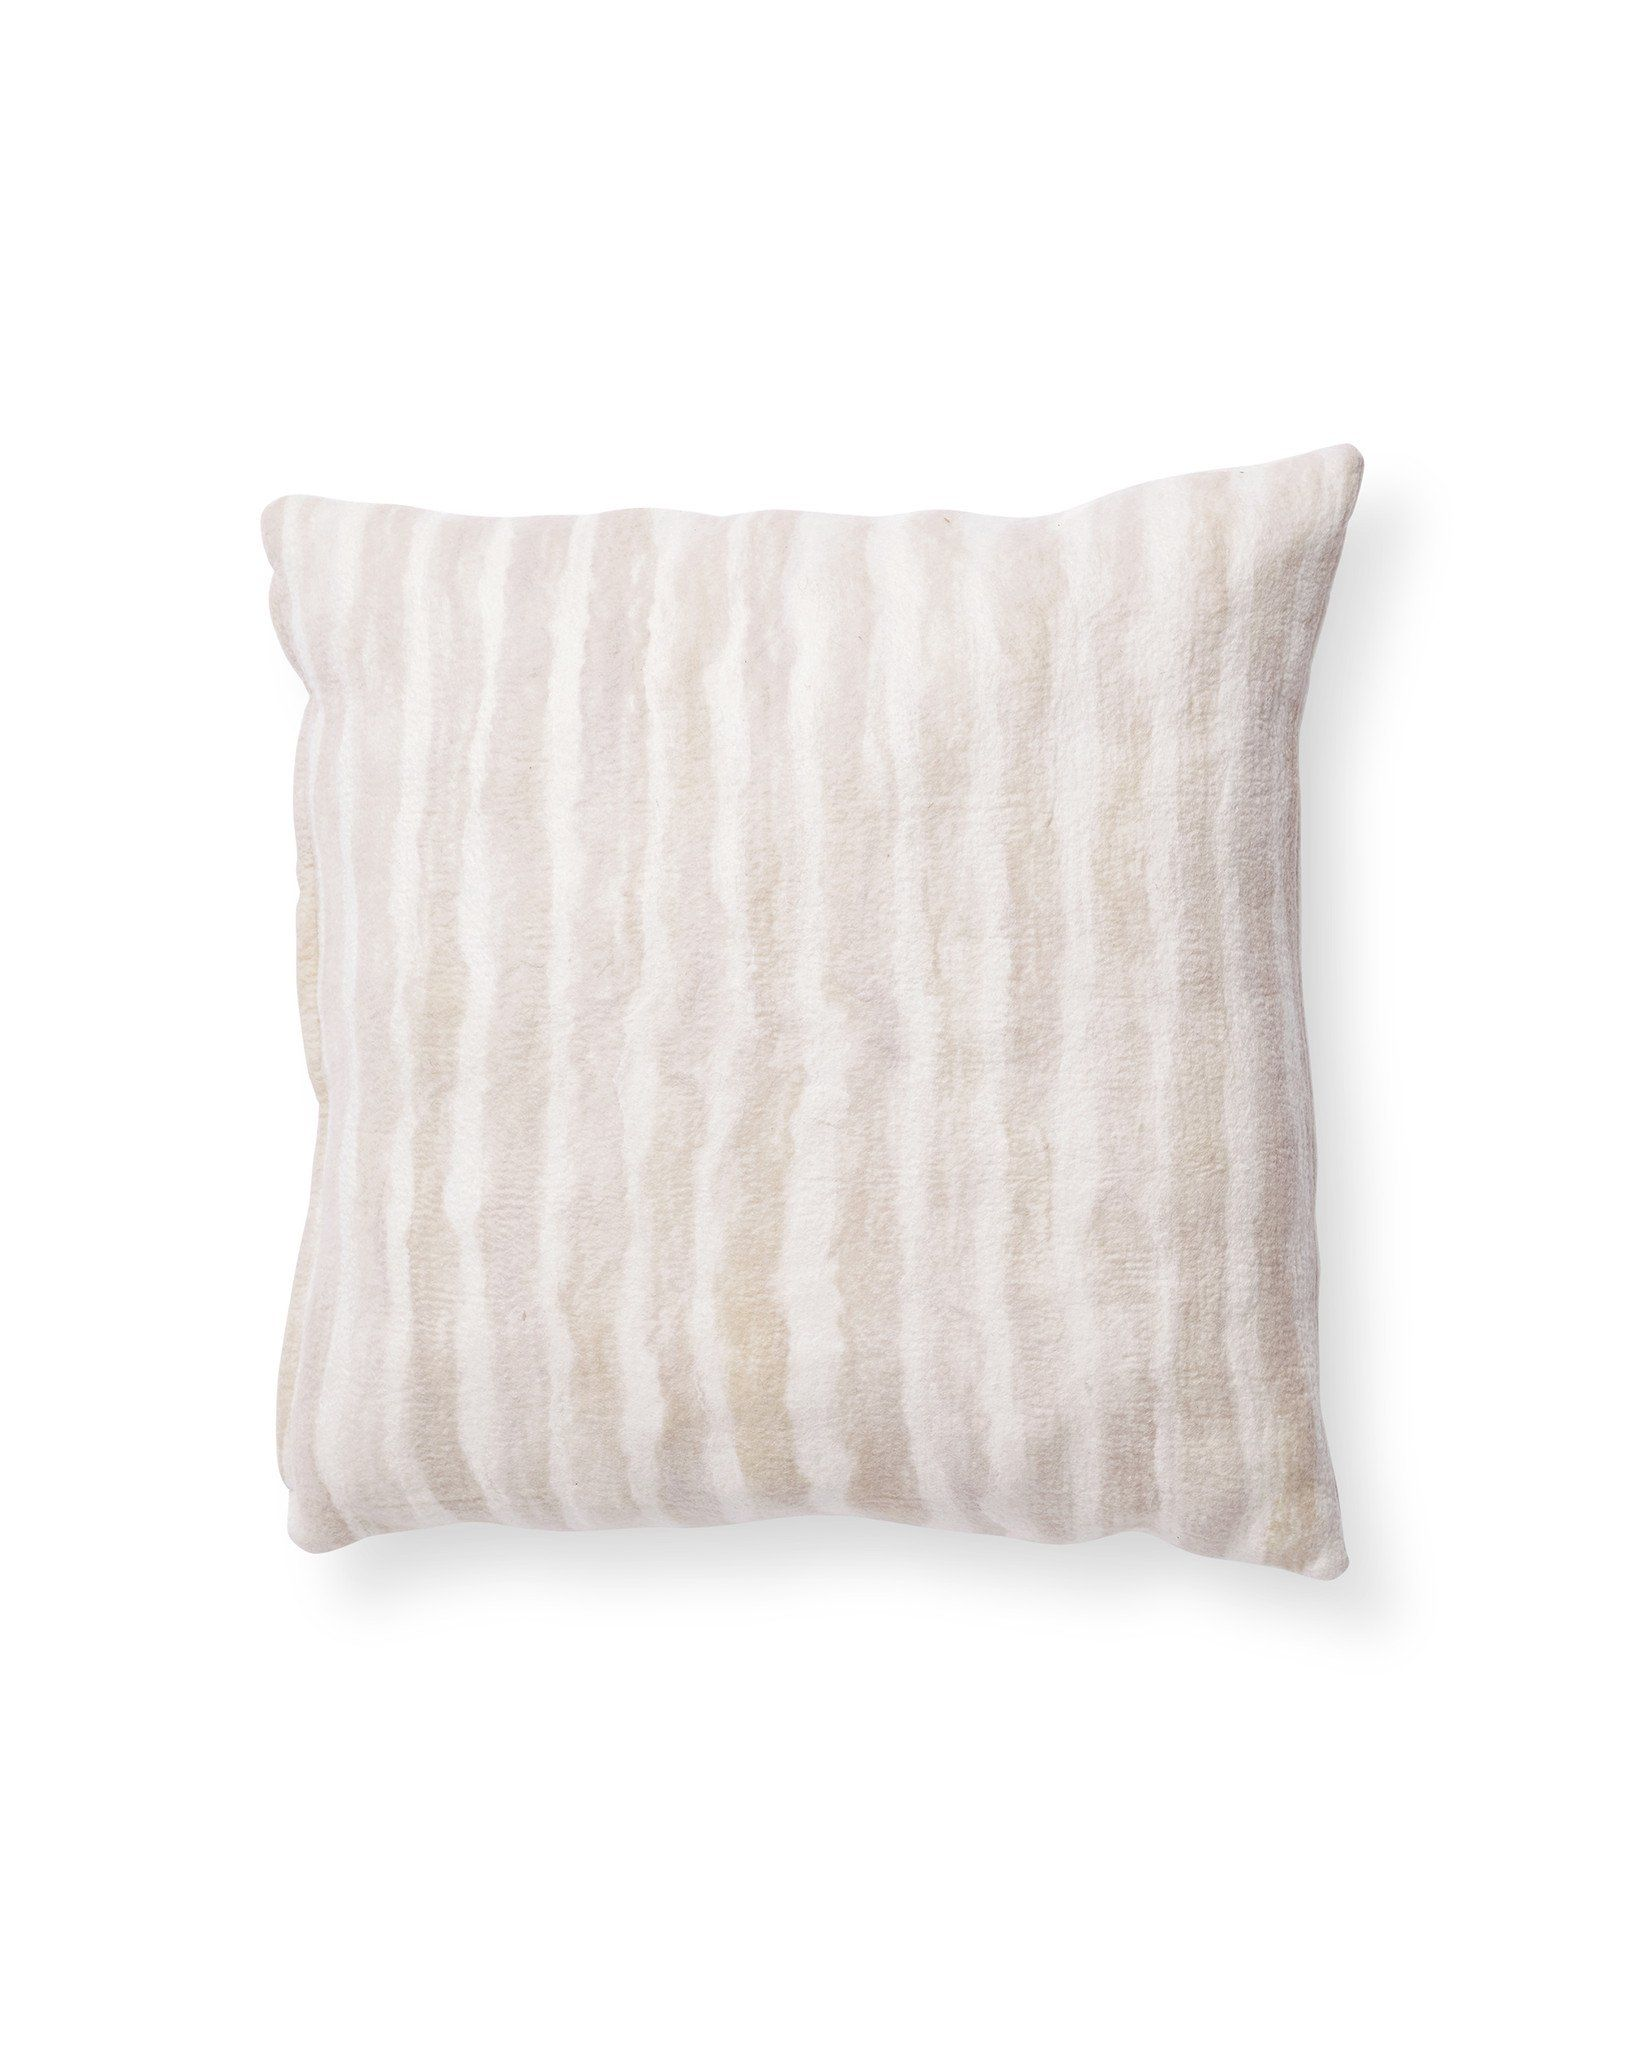 overstock cotton pillow decor over blend pack on ruffled peach orders bedding decorative poplin bath shipping pillows shams of free product